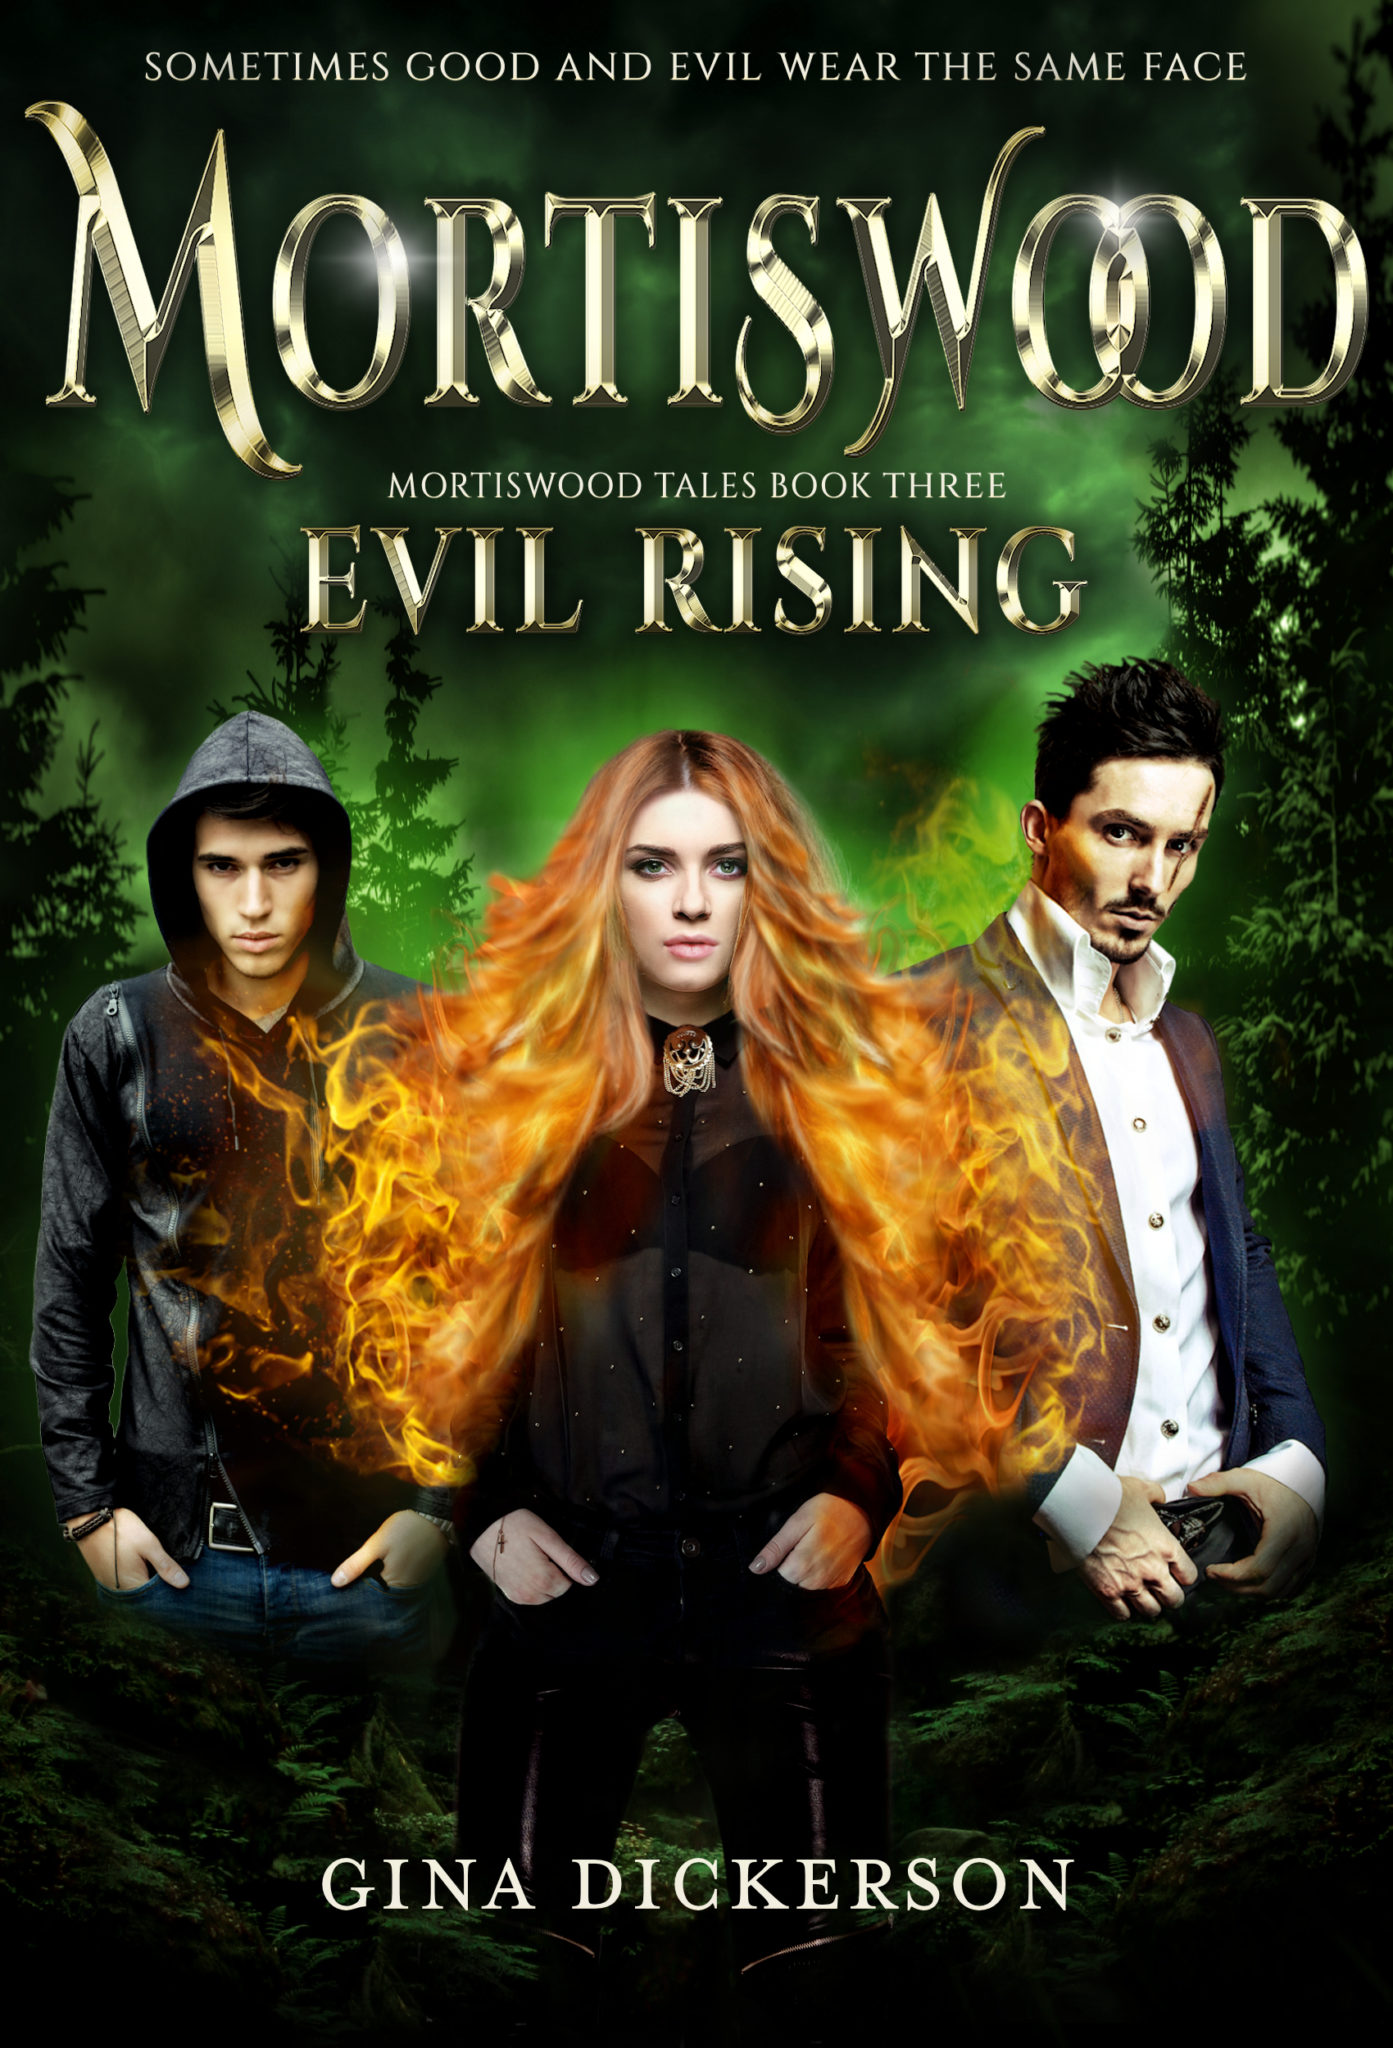 Evil Rising by Gina Dickerson